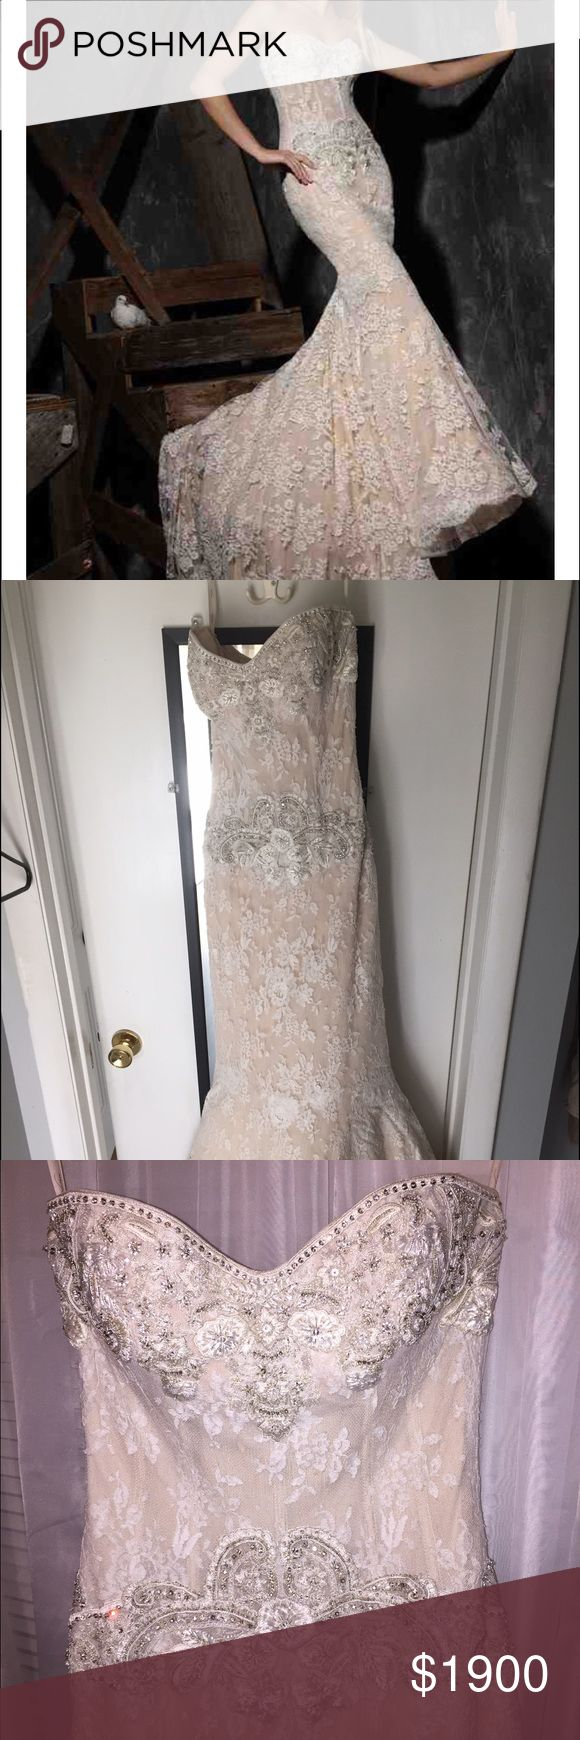 Selling this Wedding gown on Poshmark! My username is: brittster52. #shopmycloset #poshmark #fashion #shopping #style #forsale #victor harper  #Dresses & Skirts